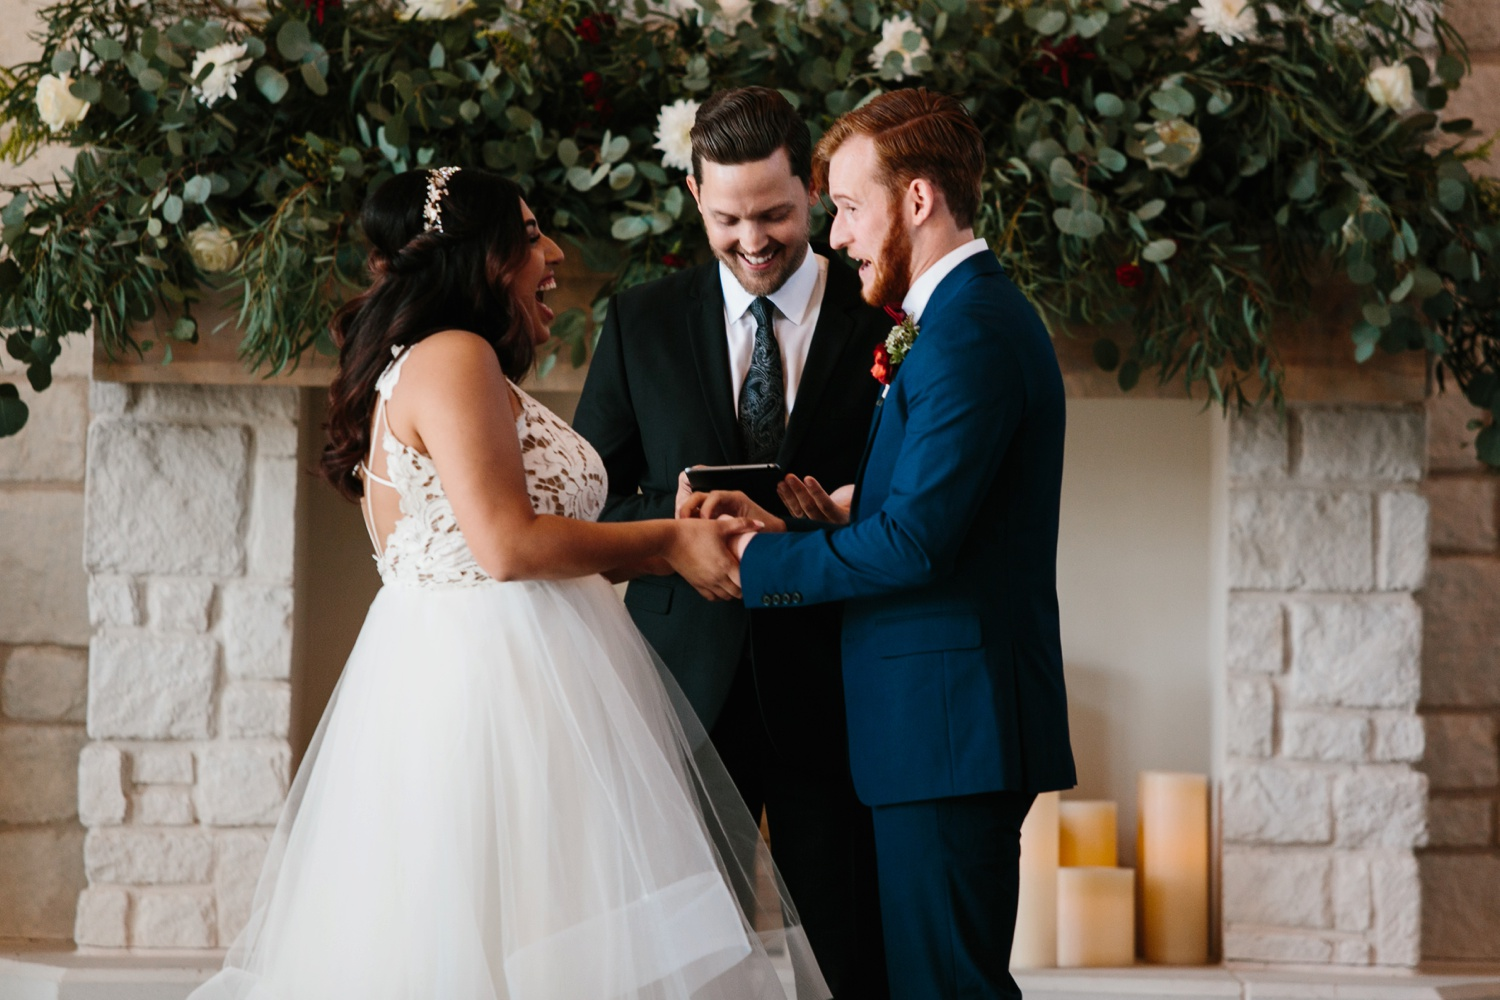 Grant + Lysette | a vibrant, deep burgundy and navy, and mixed metals wedding at Hidden Pines Chapel by North Texas Wedding Photographer Rachel Meagan Photography 091